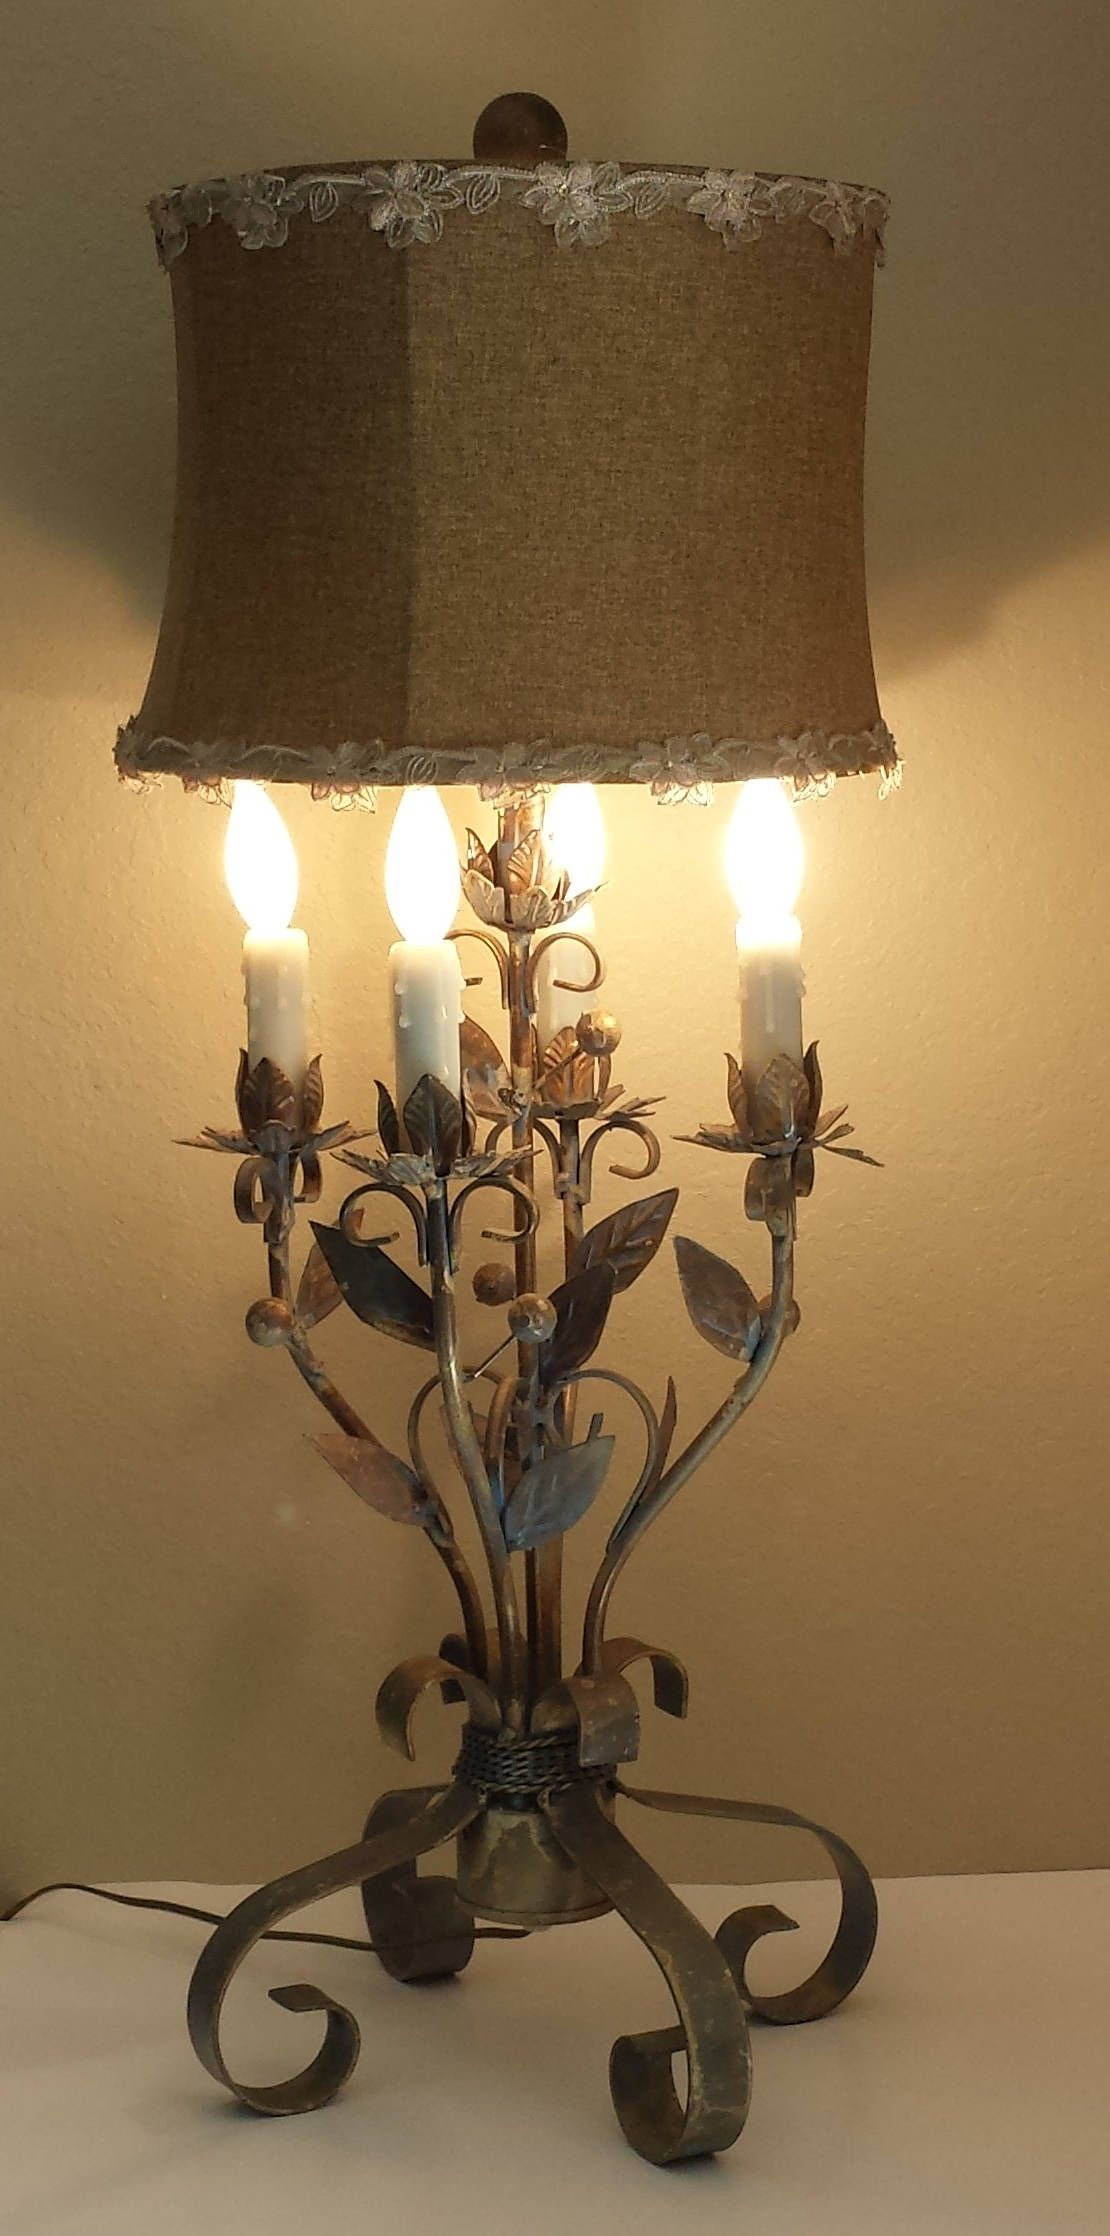 Vintage Wrought Iron Table Lamp Home Decor Wrought Iron Lamp By